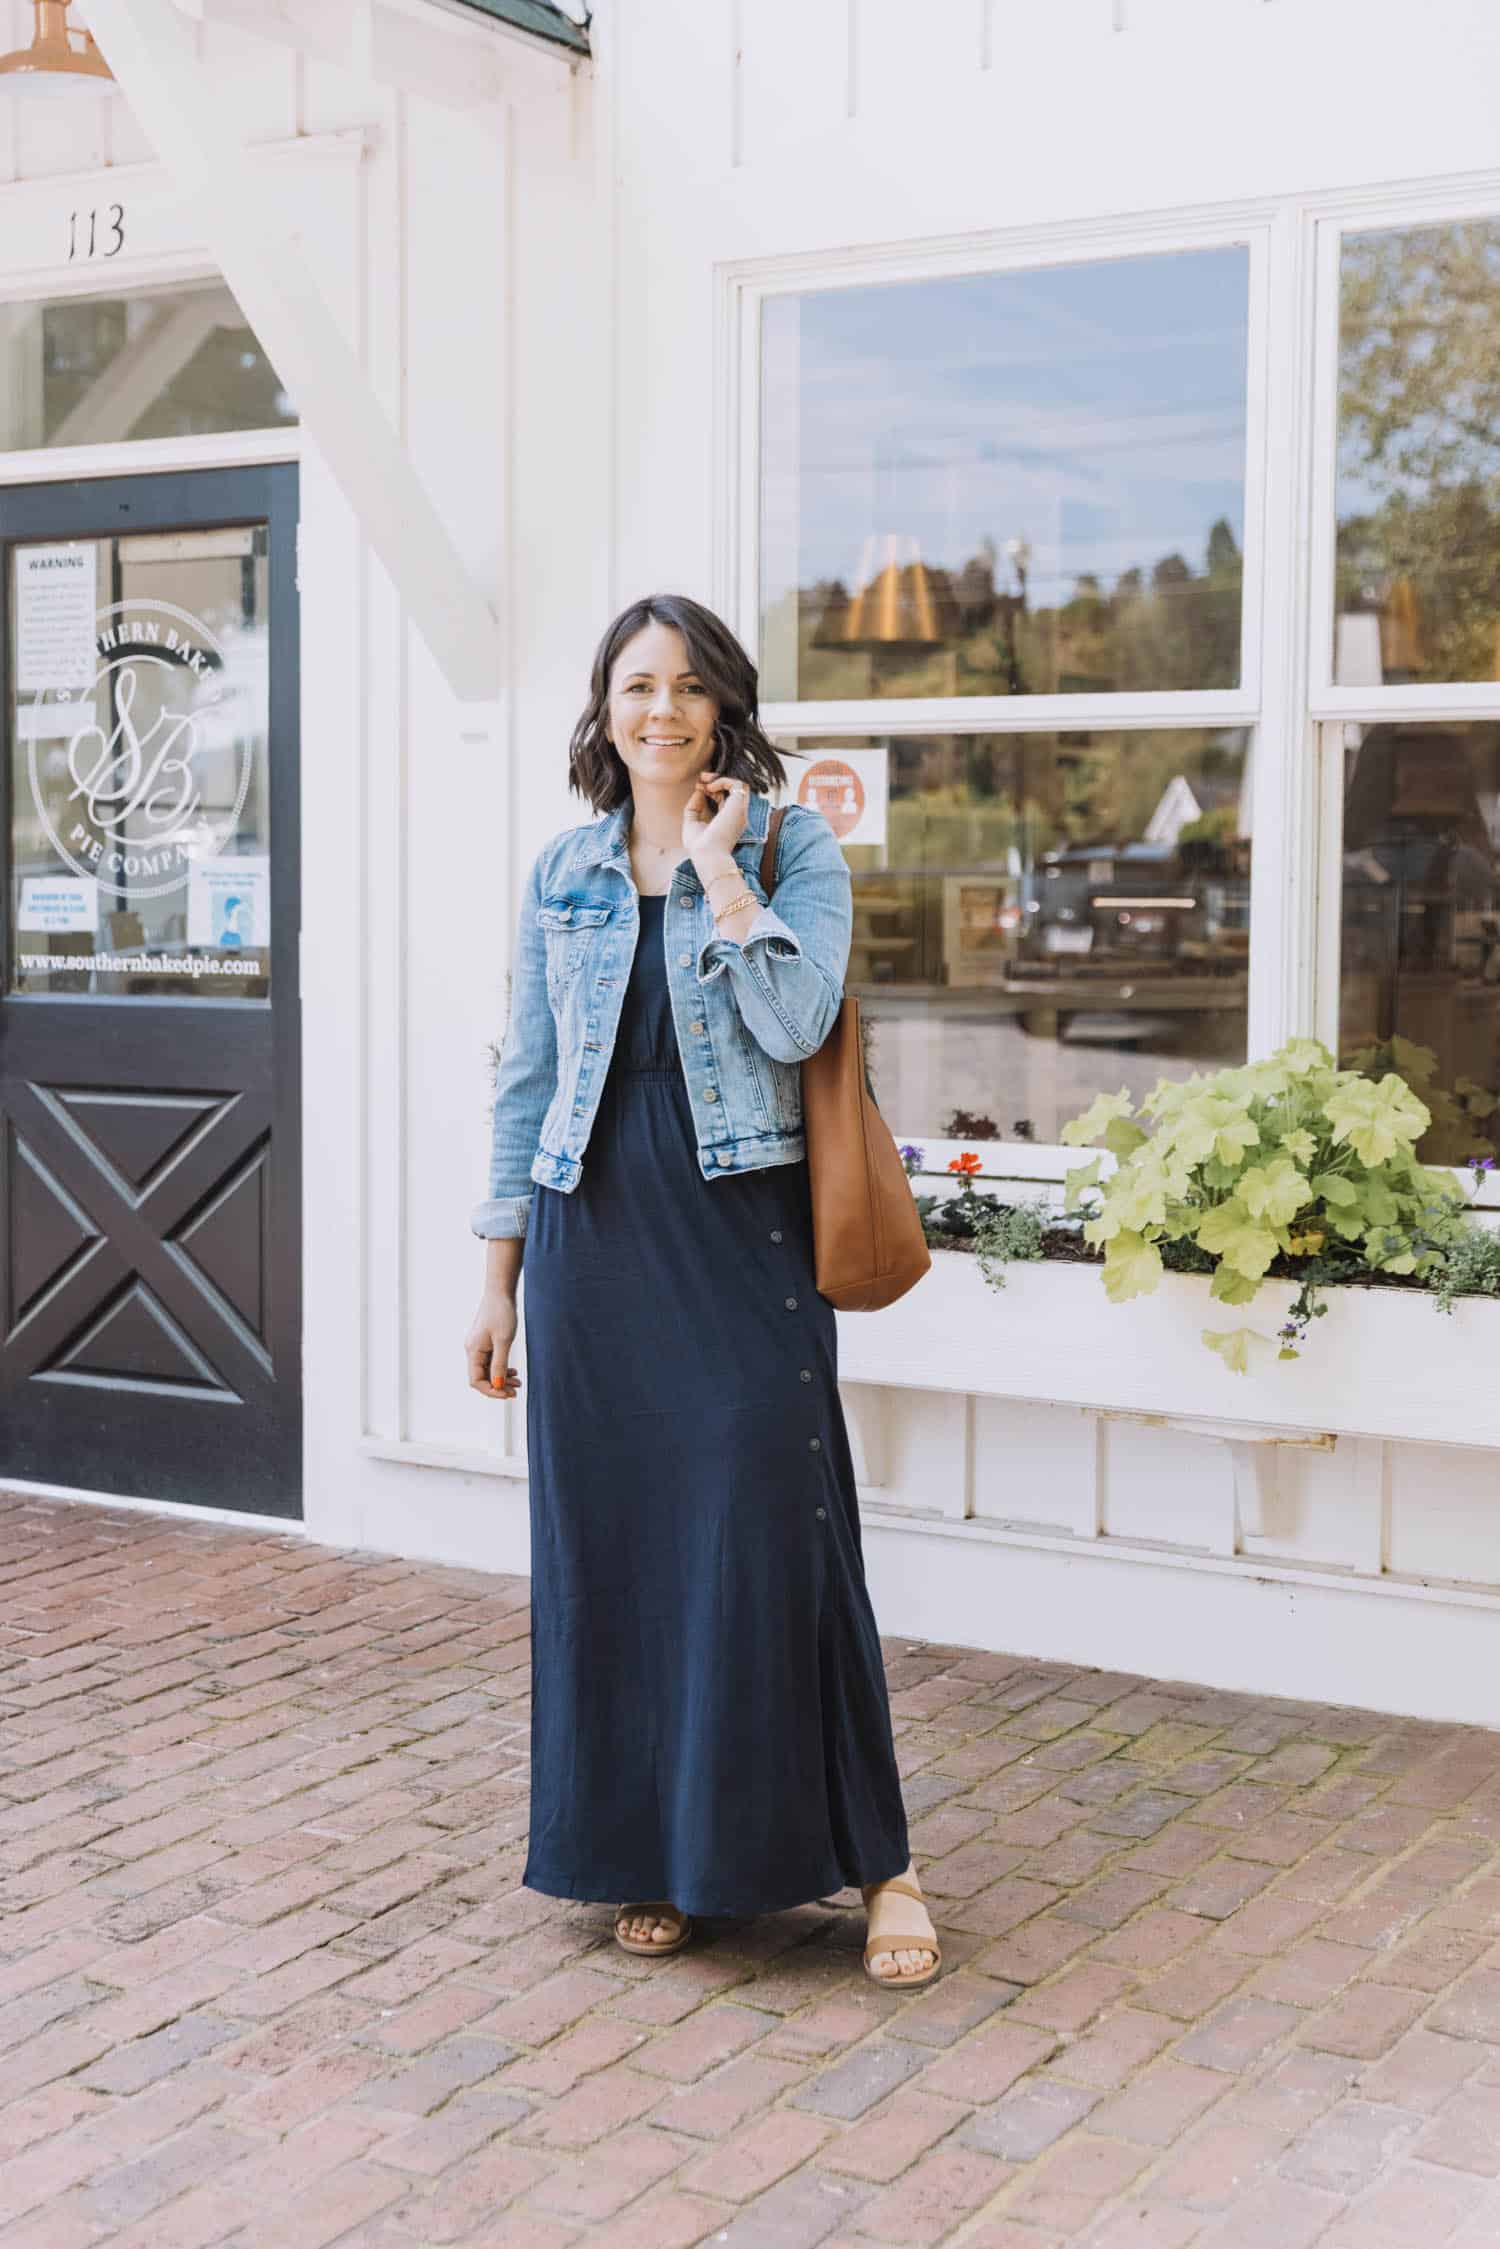 Maxi Dress spring outfit ideas